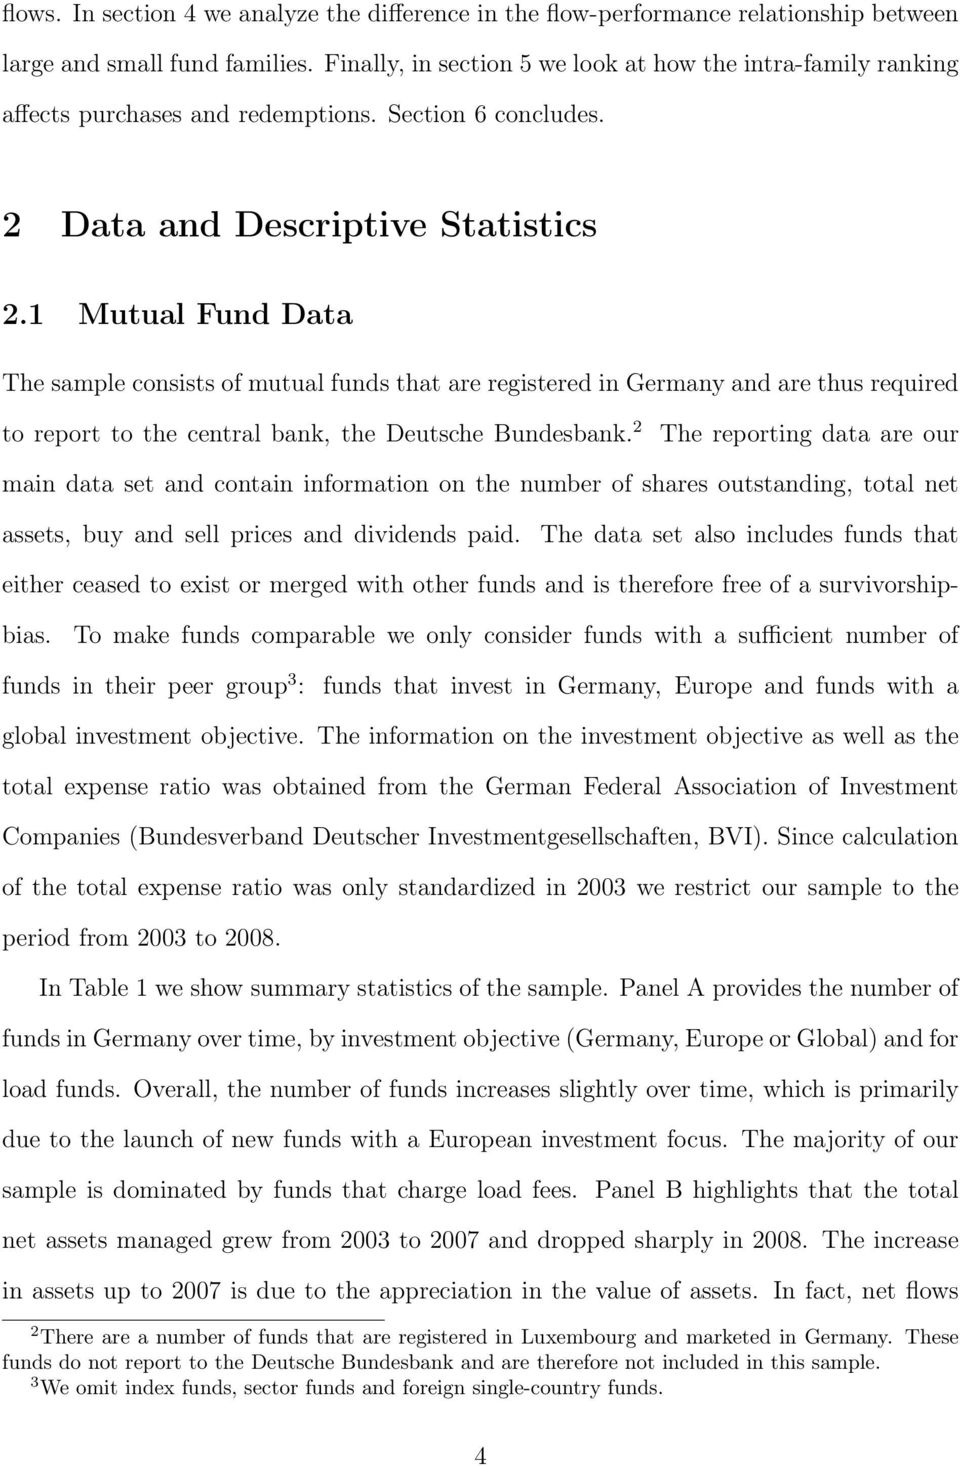 1 Mutual Fund Data The sample consists of mutual funds that are registered in Germany and are thus required to report to the central bank, the Deutsche Bundesbank.